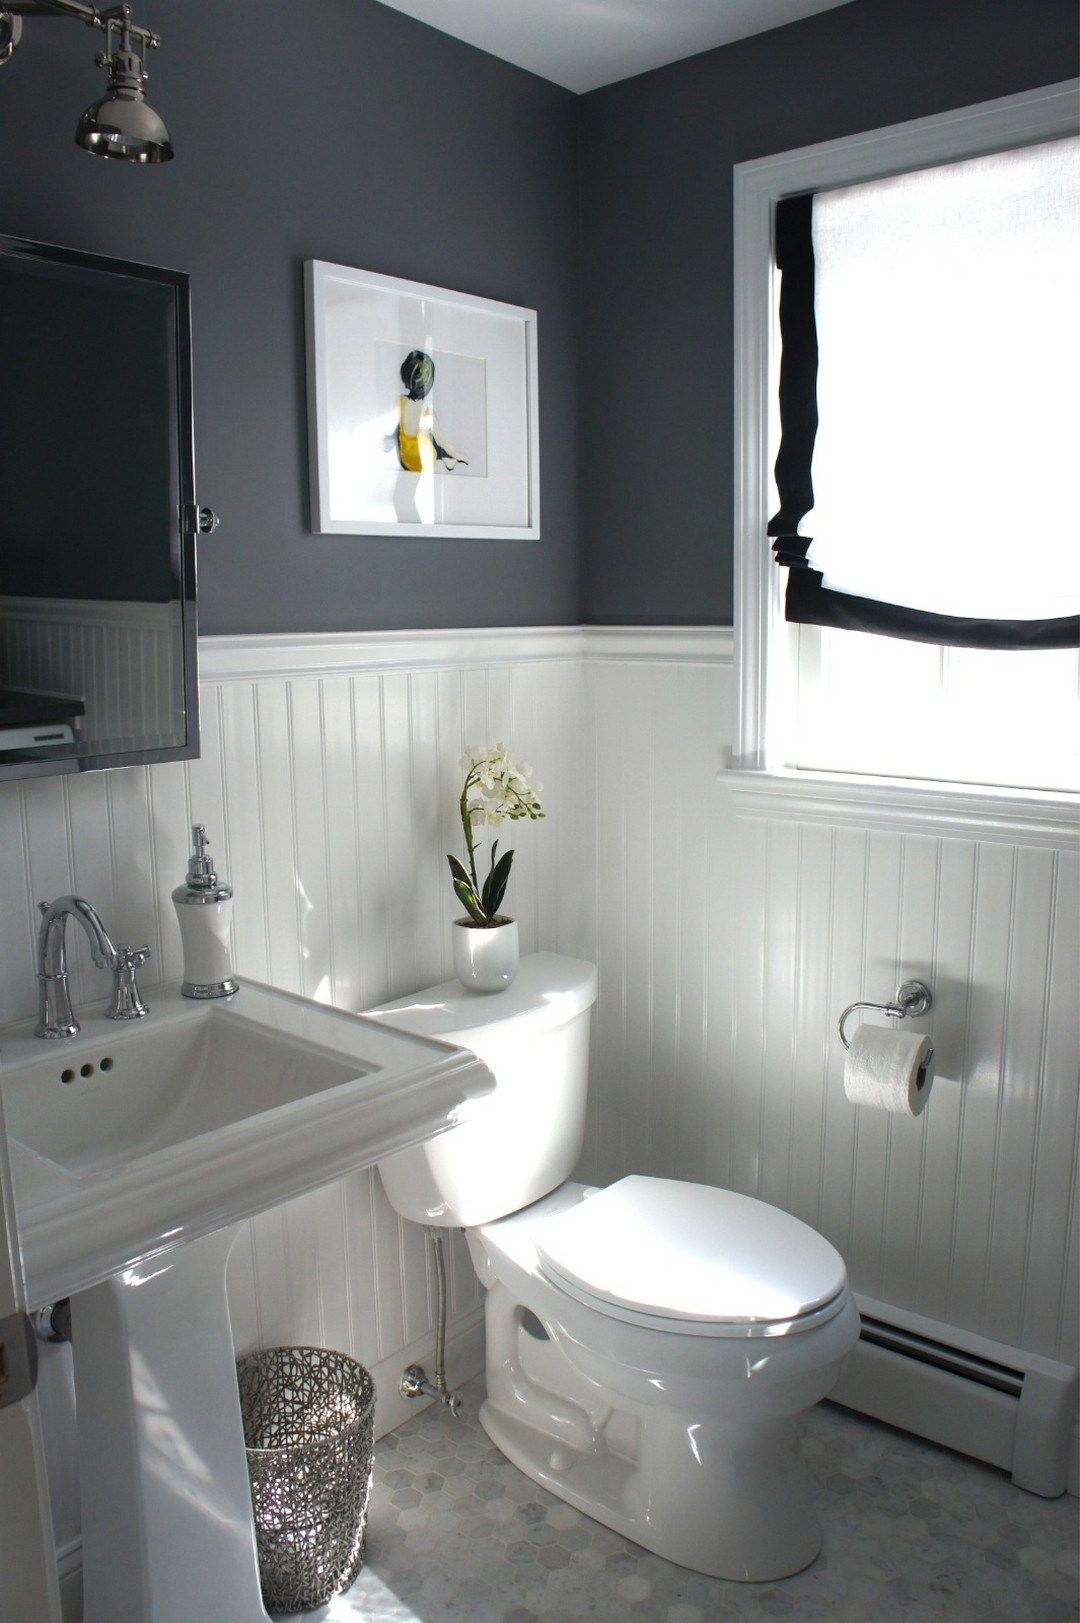 99 small master bathroom makeover ideas on a budget 48 for Small master bathroom